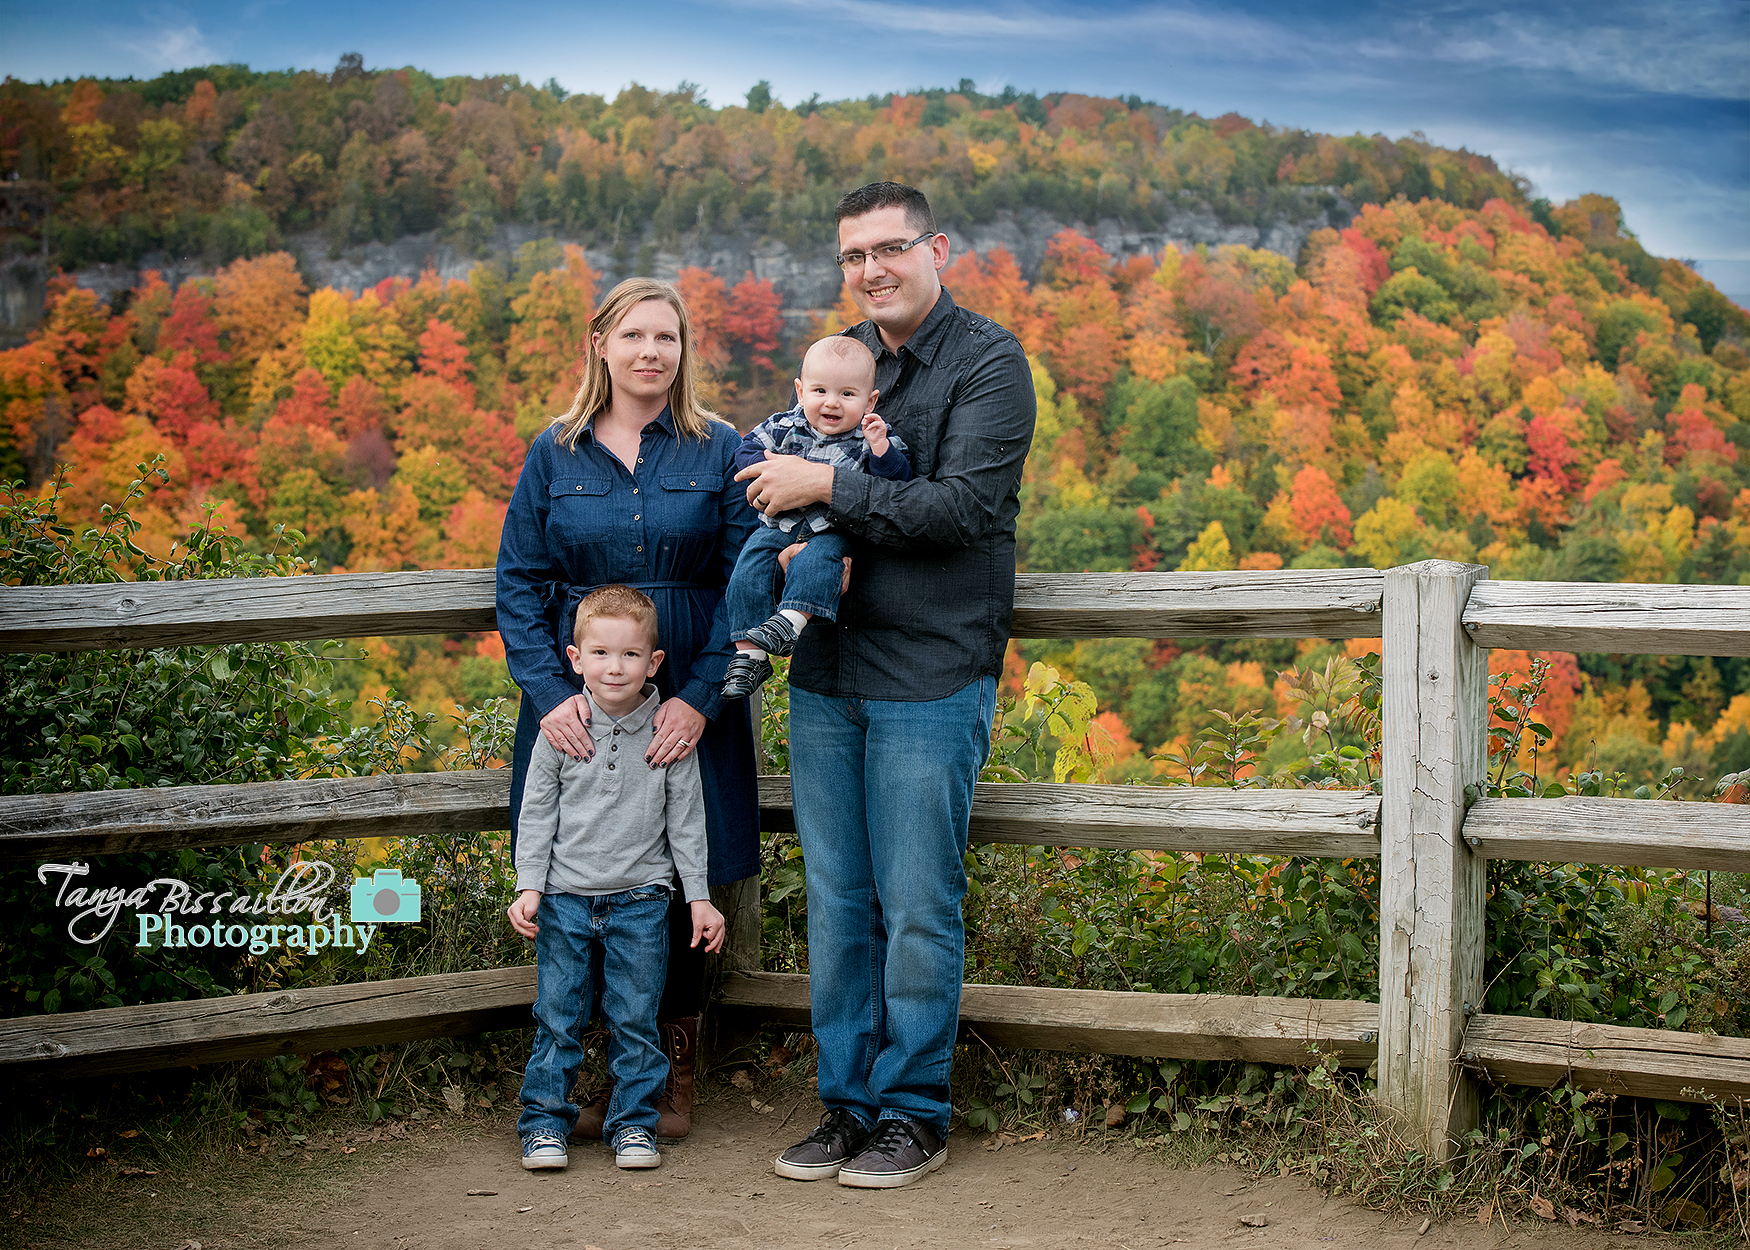 Family photos taken on a beautiful fall day